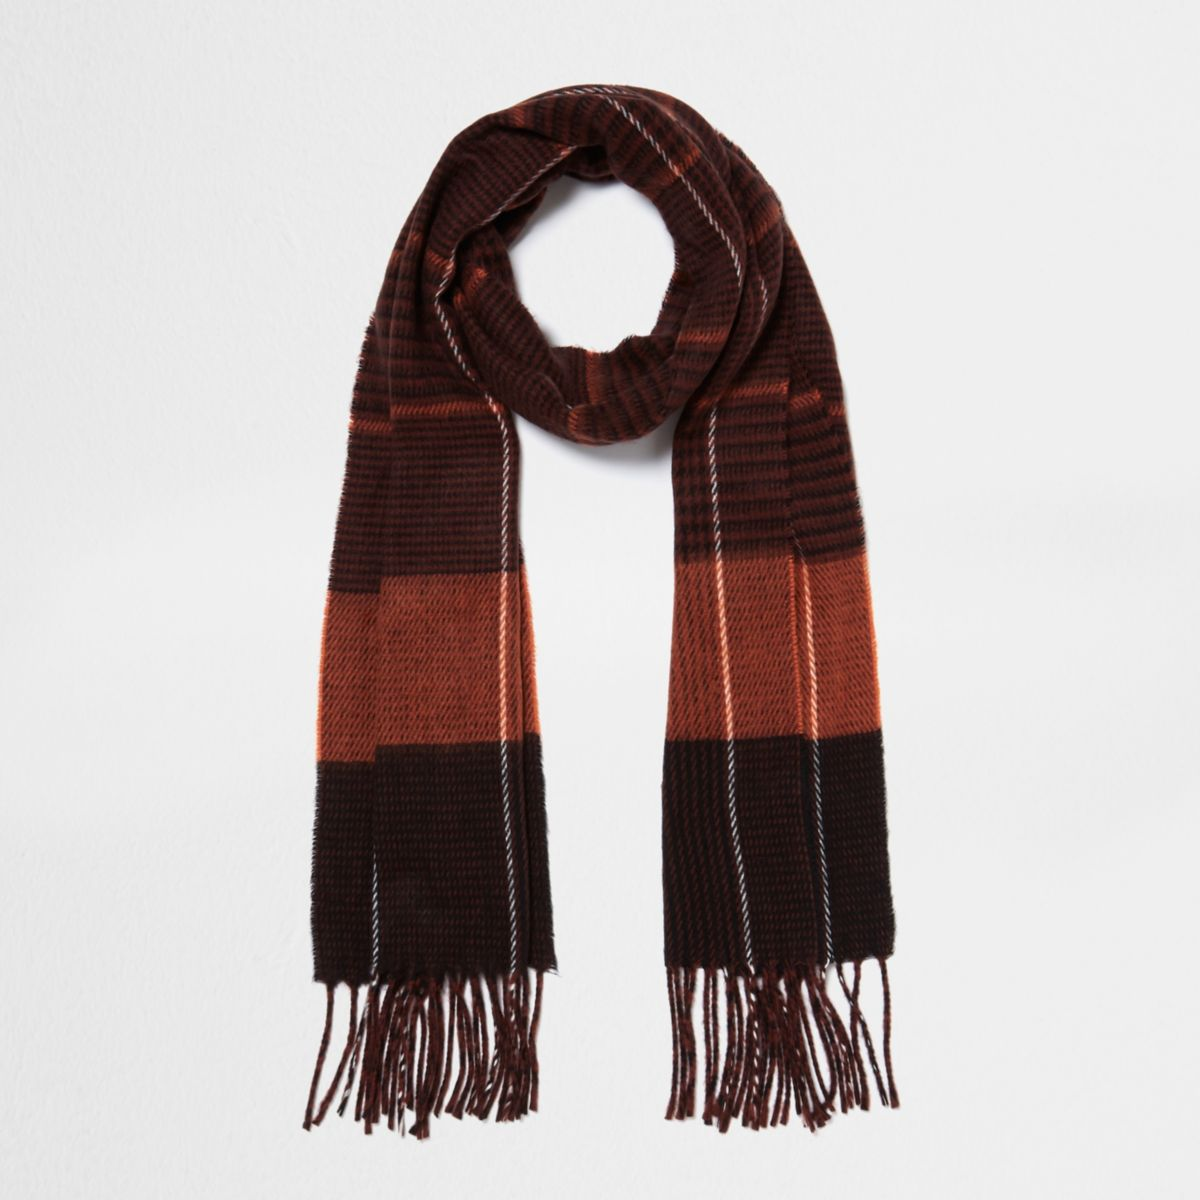 Rust orange check scarf